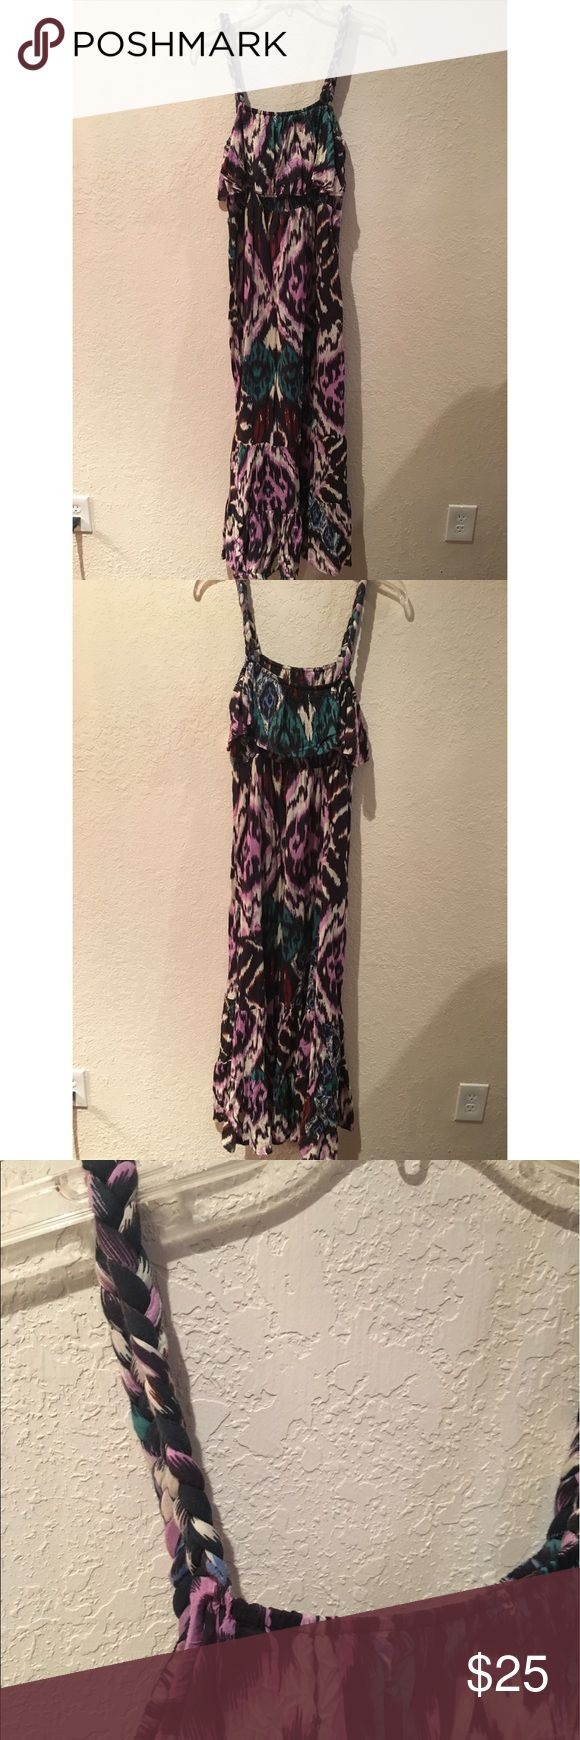 Purple, Blue, Cream Maxi Dress with Rope Straps Beautiful dress! Worn once. Rope detailed straps. So flattering! Dresses